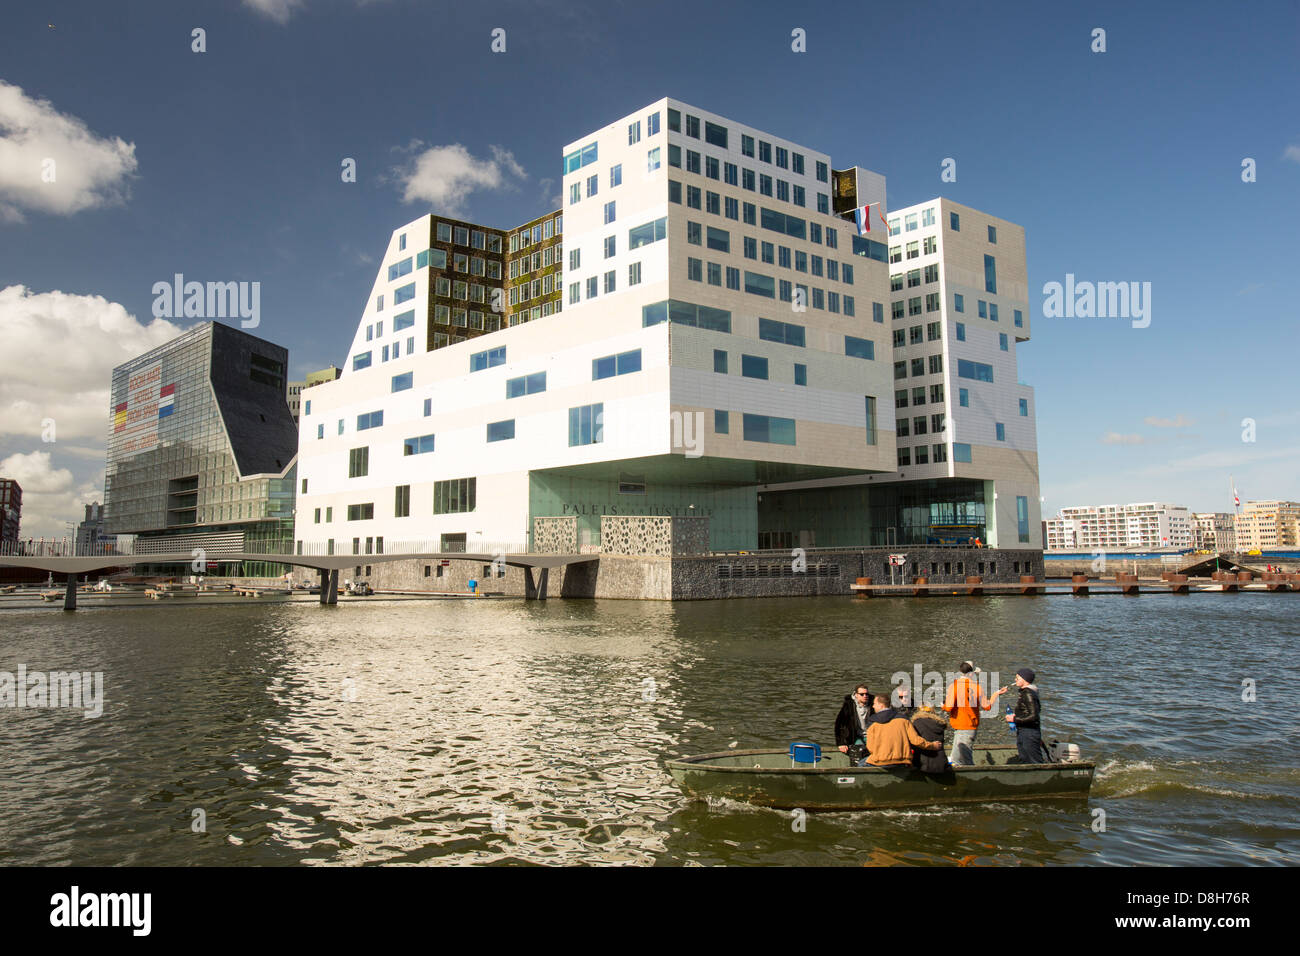 The modern Palace of Justice building in Amsterdam, Netherlands